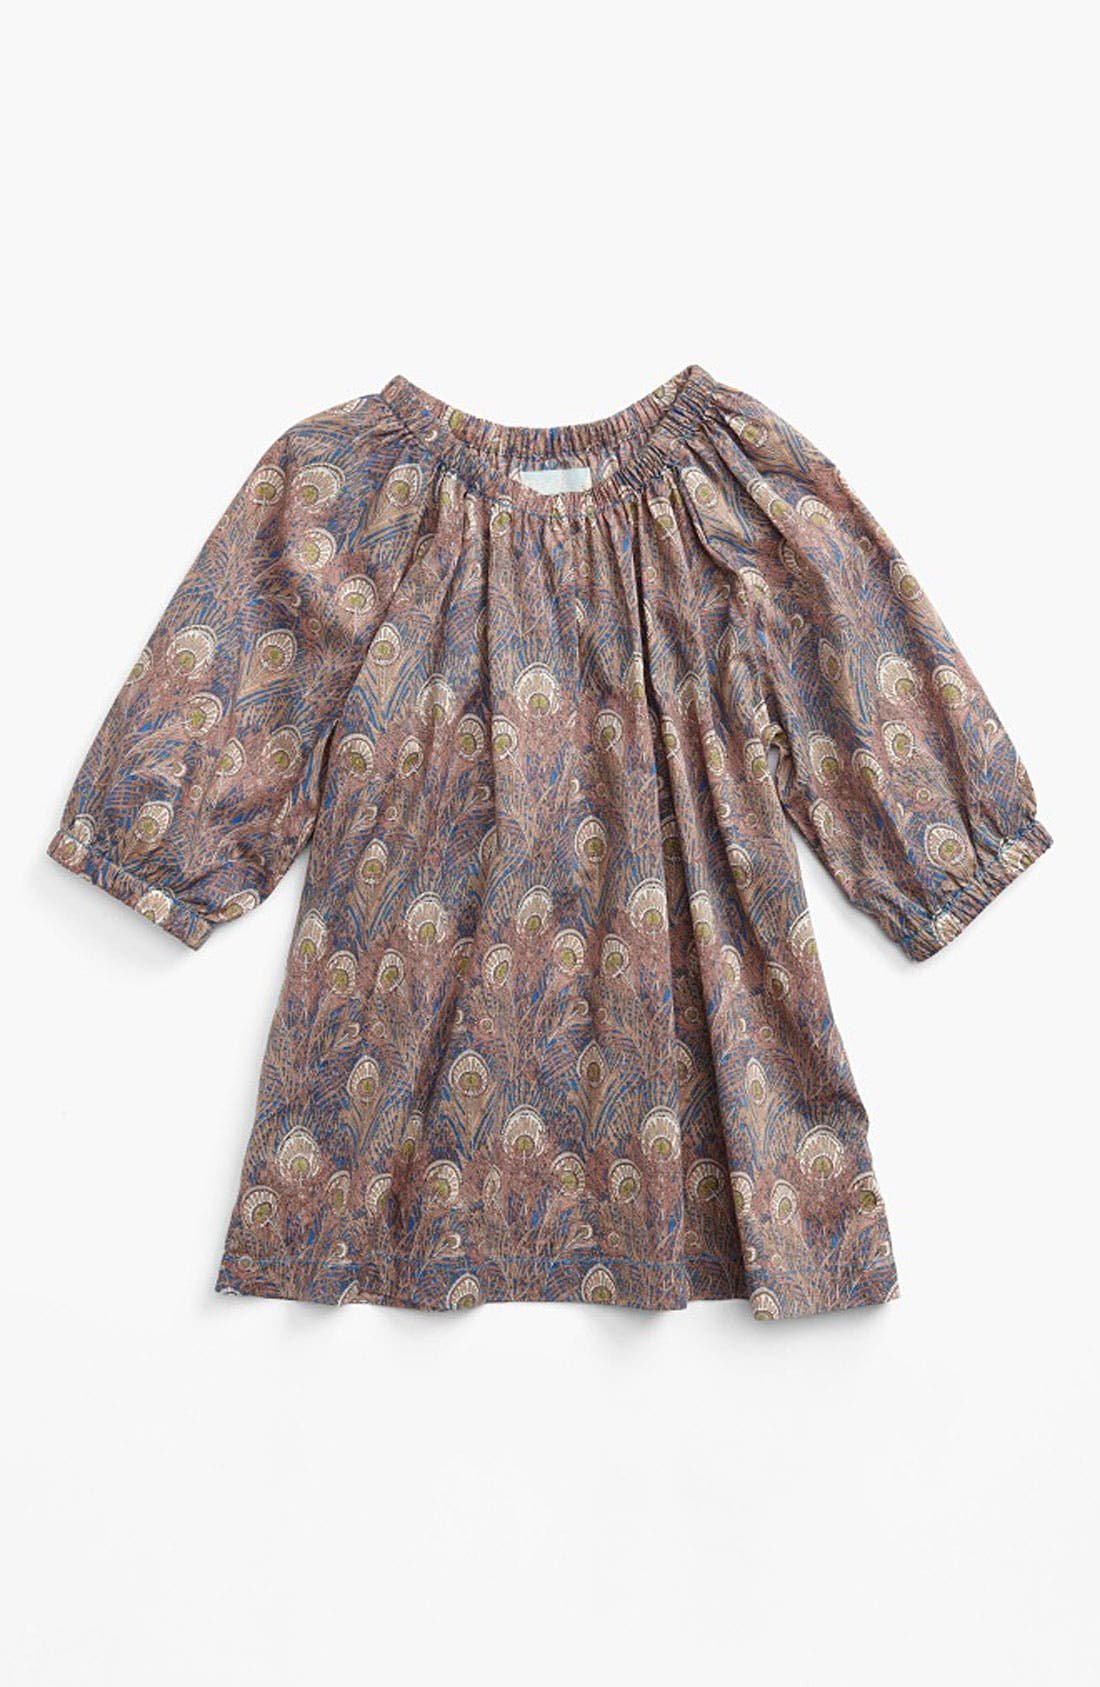 Alternate Image 1 Selected - Peek 'Hera' Top (Toddler, Little Girls & Big Girls)